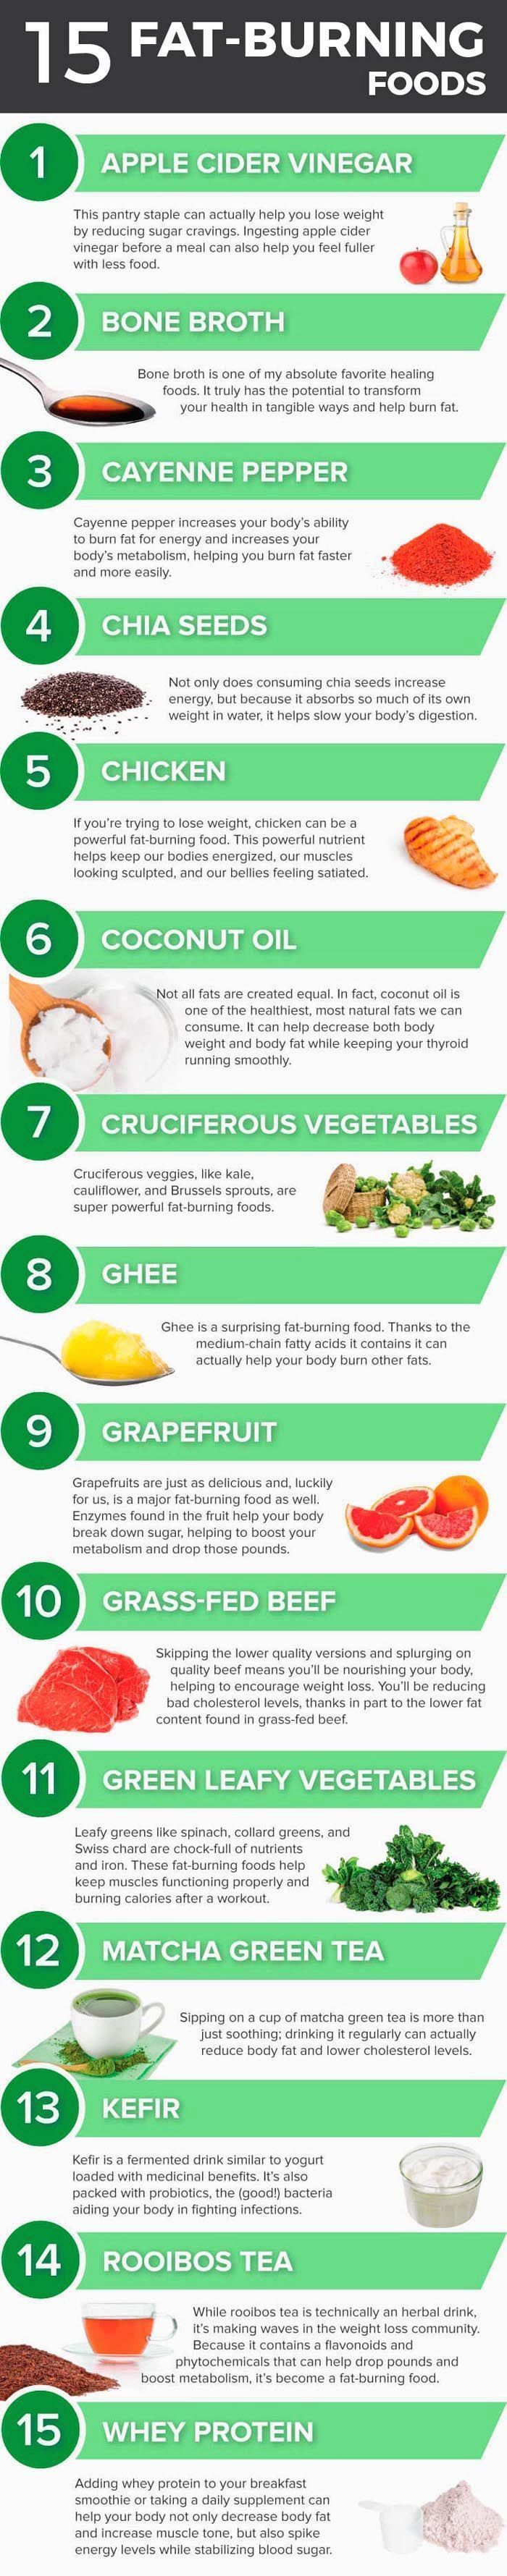 15 fat burning superfoods